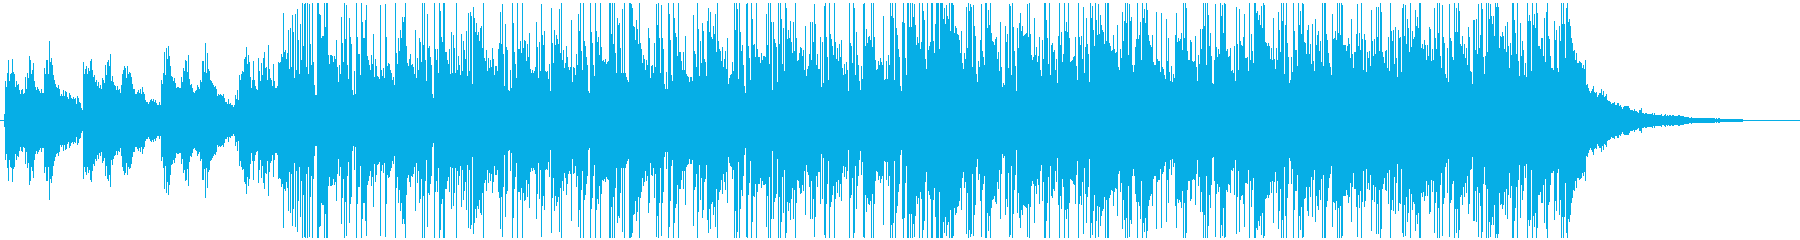 Fantasy minor tone with the image of the moon's reproduced waveform